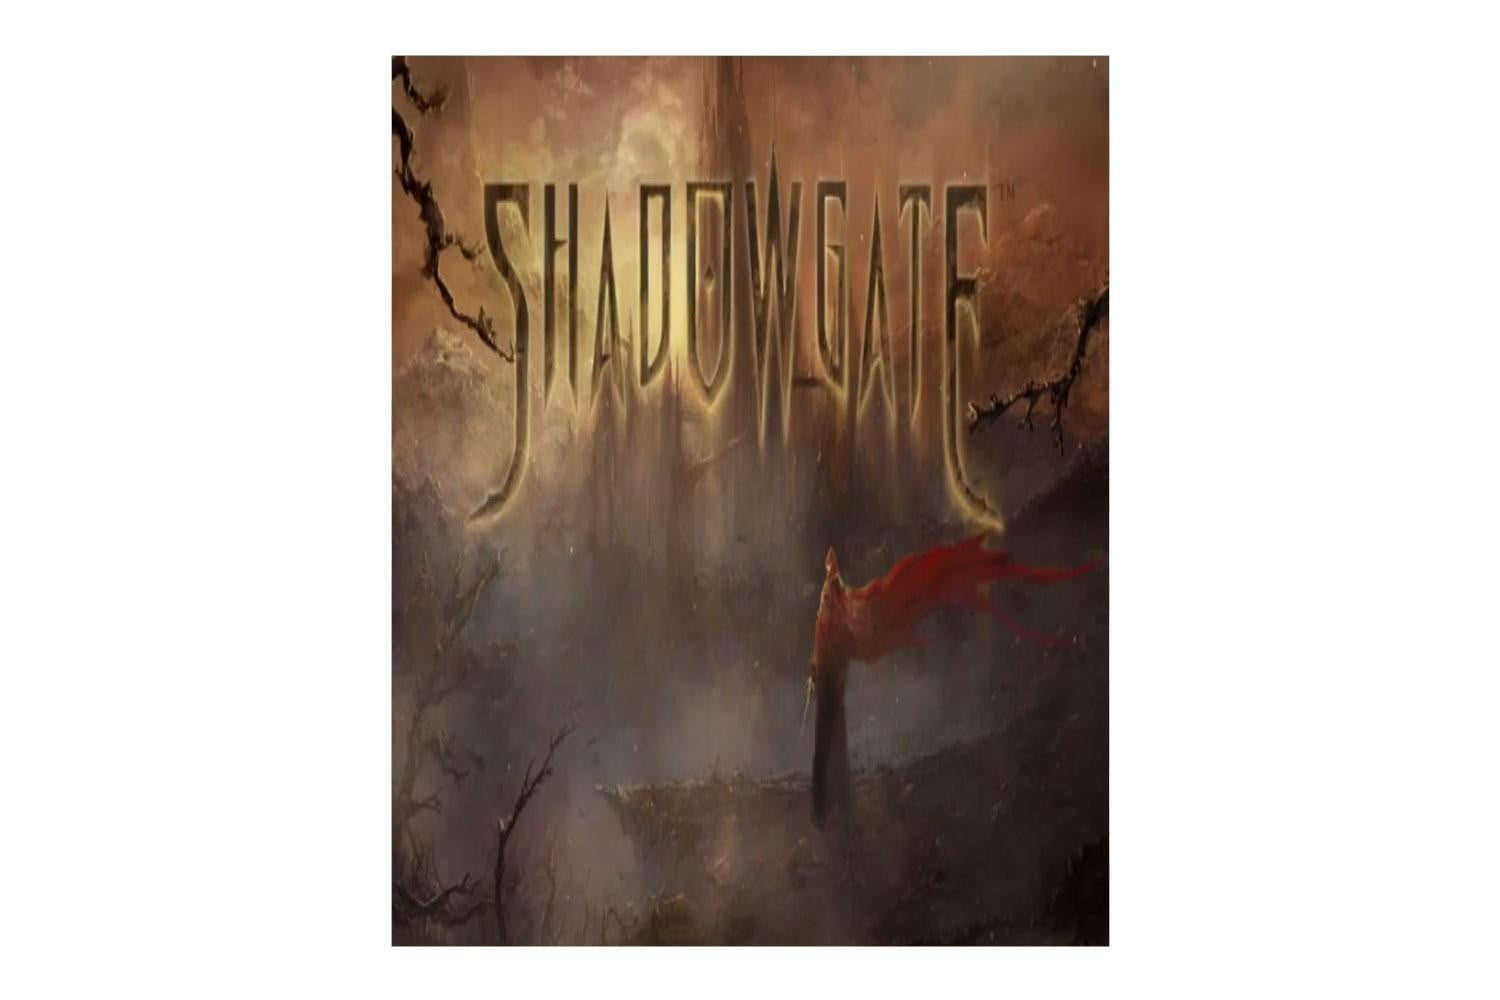 Shadowgate-cover-art